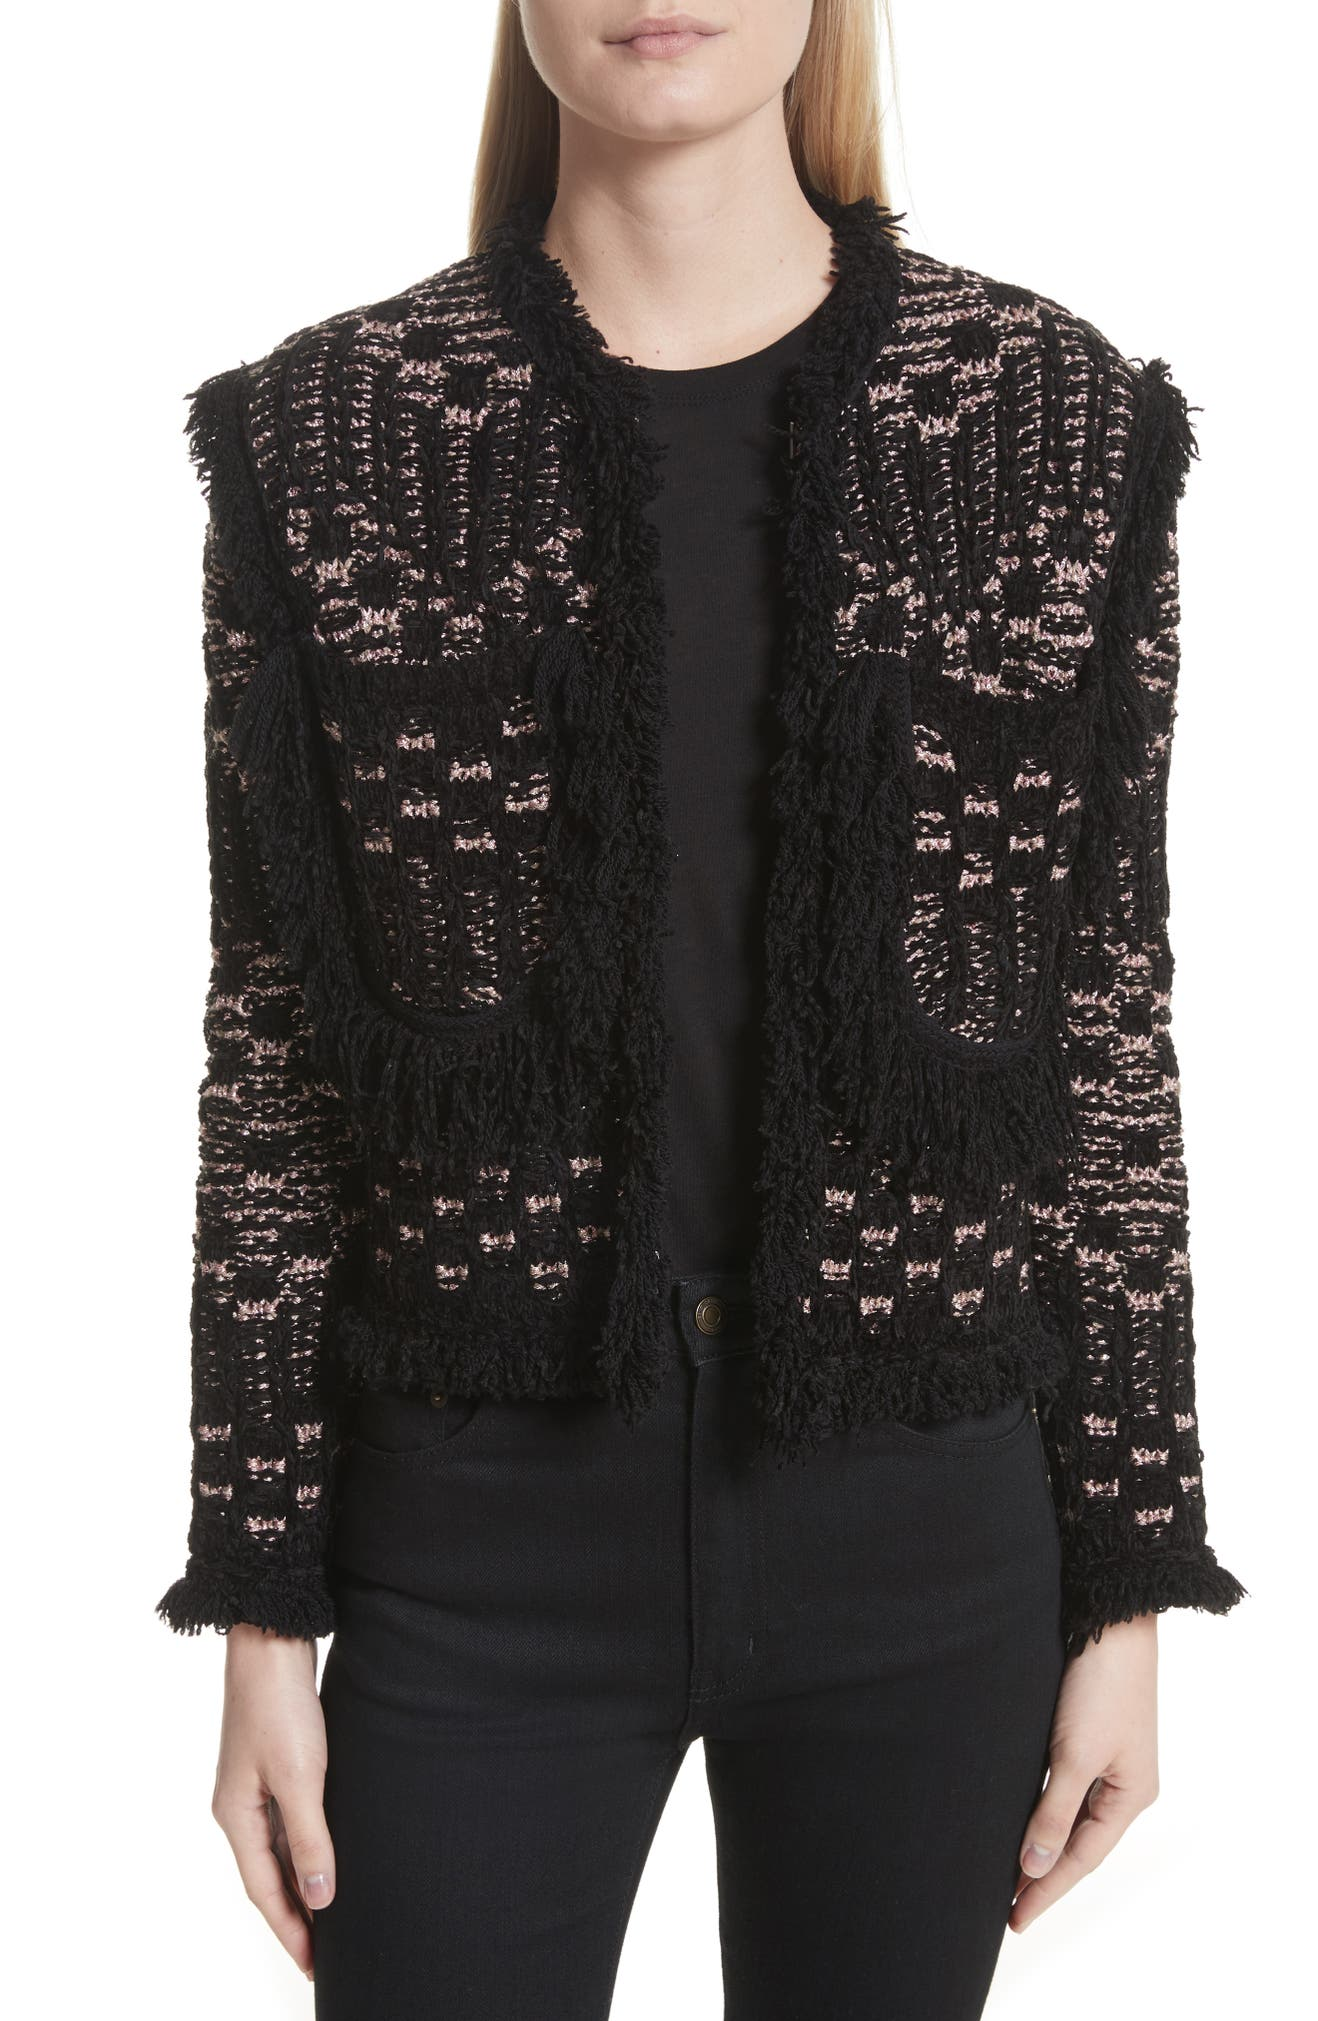 a171914475 M Missoni Tweed Jacket